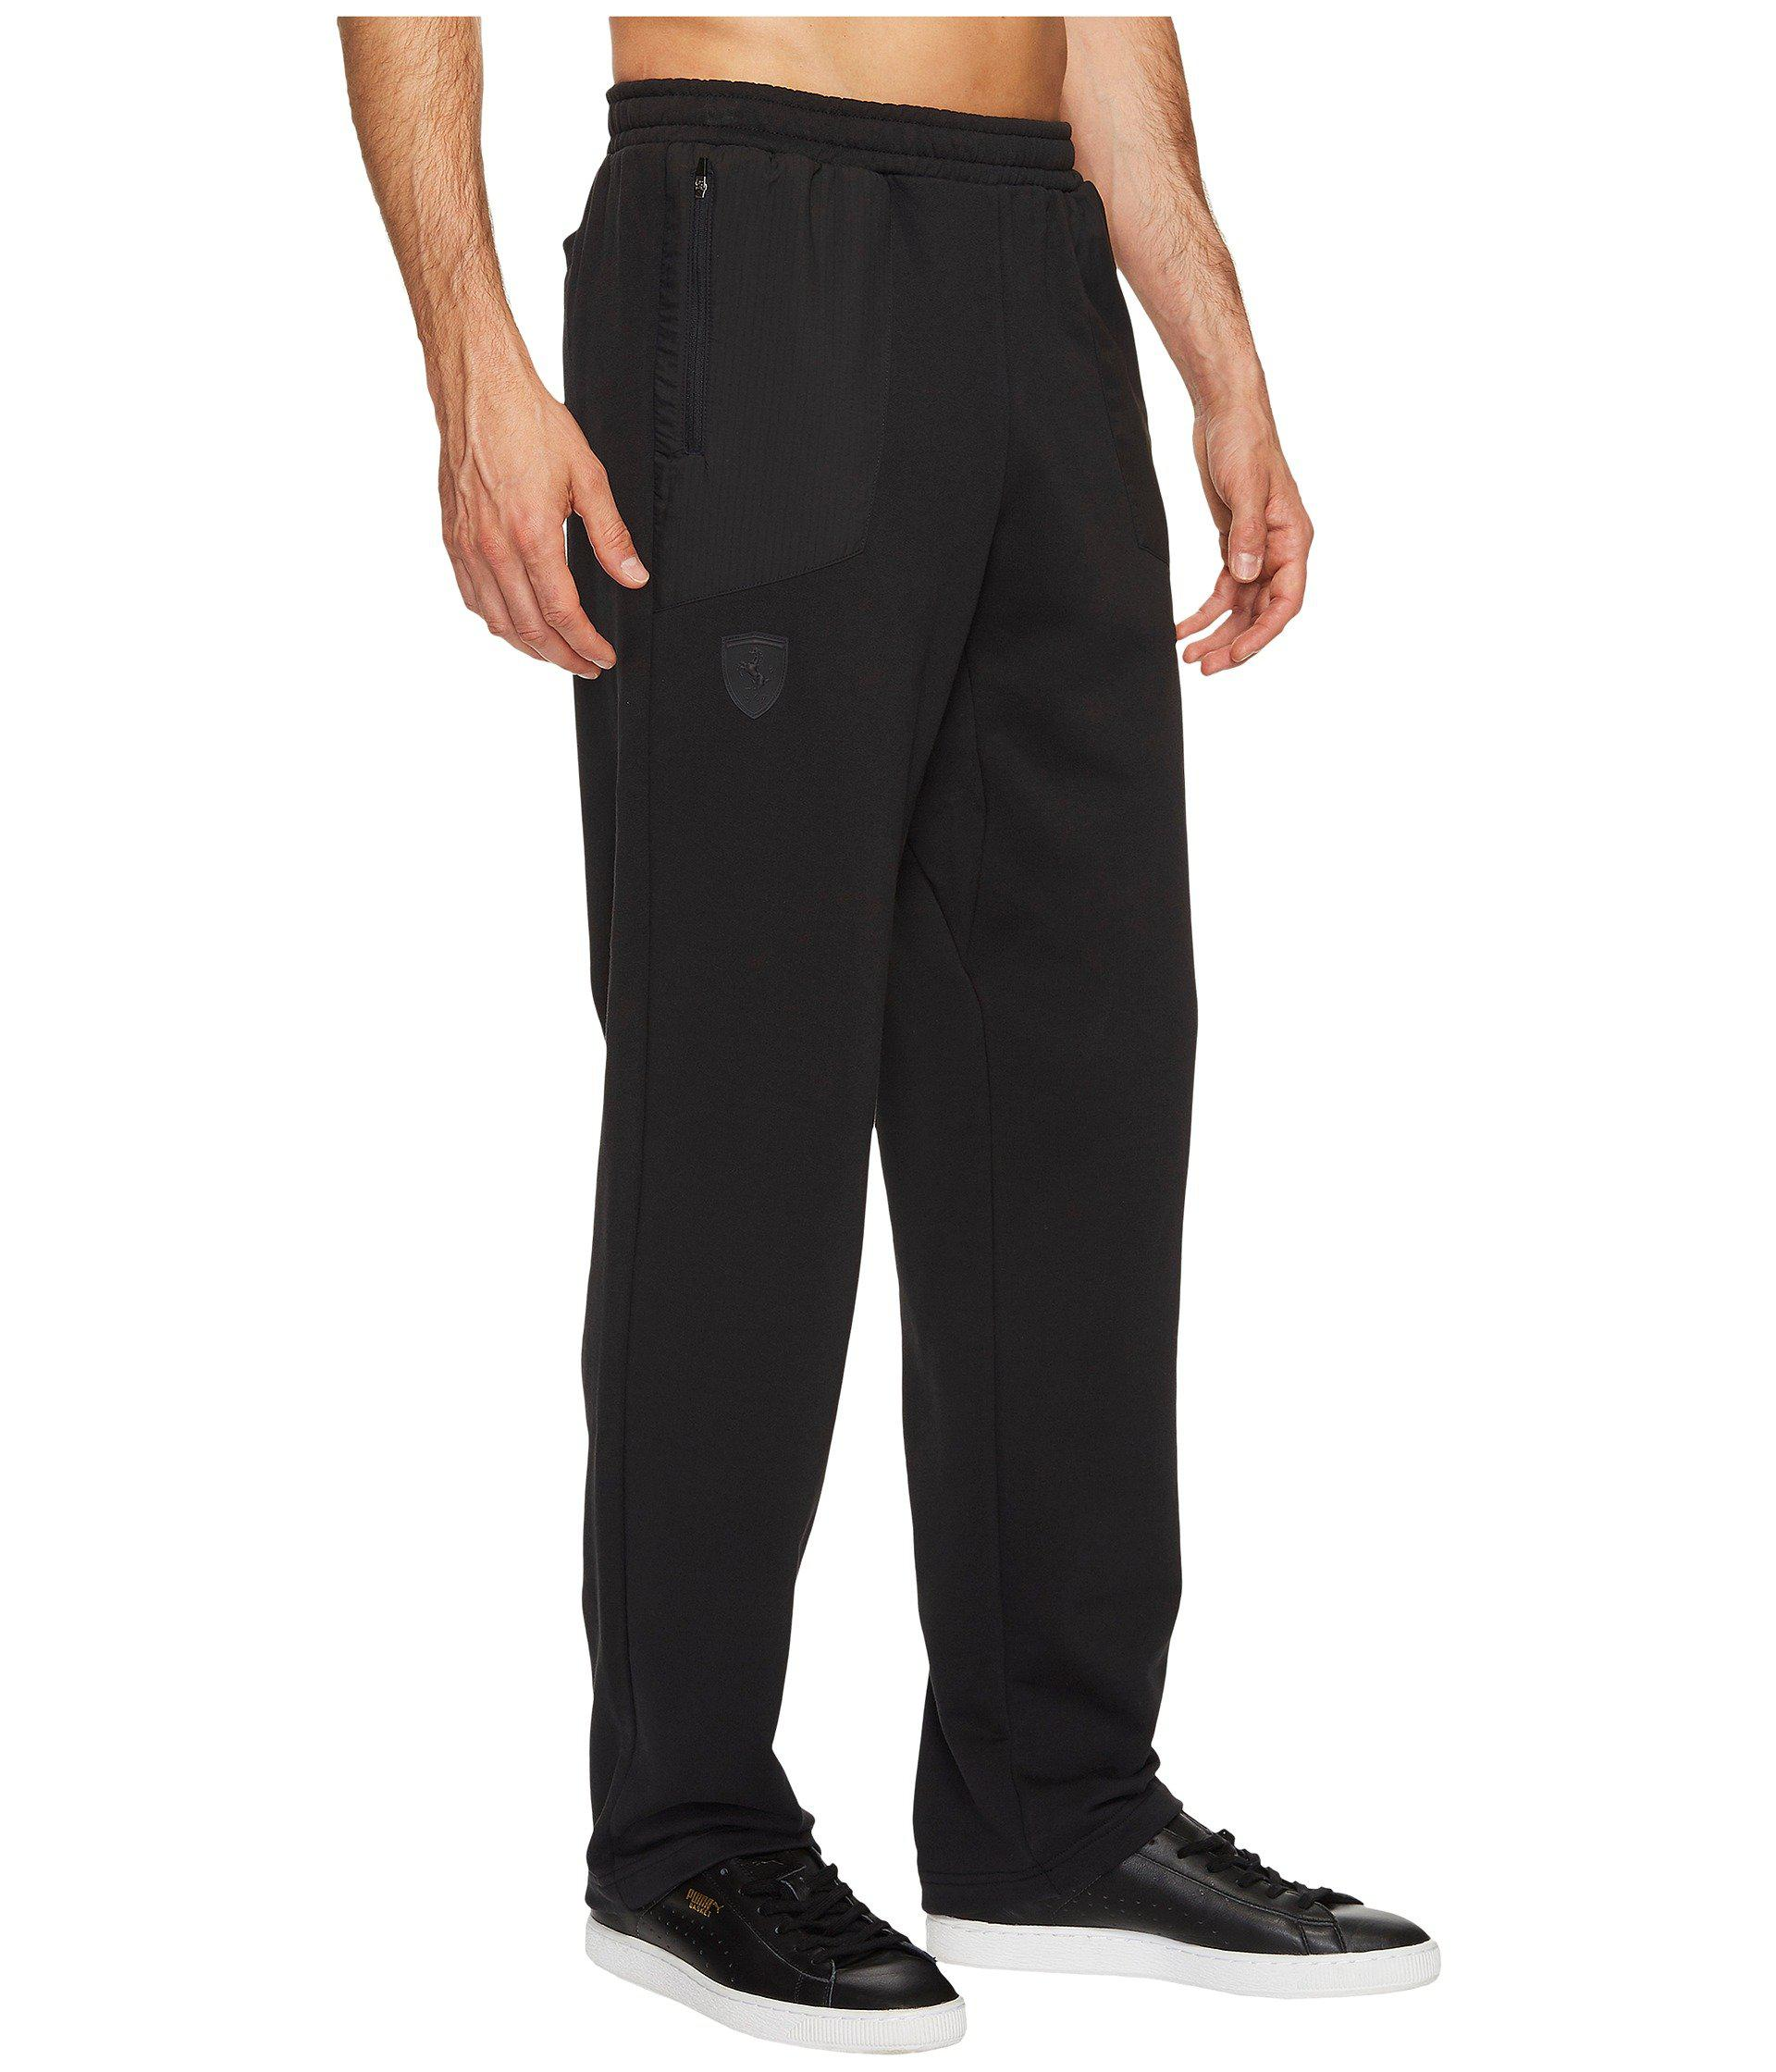 de20d992ac5e Lyst - PUMA Ferrari Open Cuff Sweatpants in Black for Men